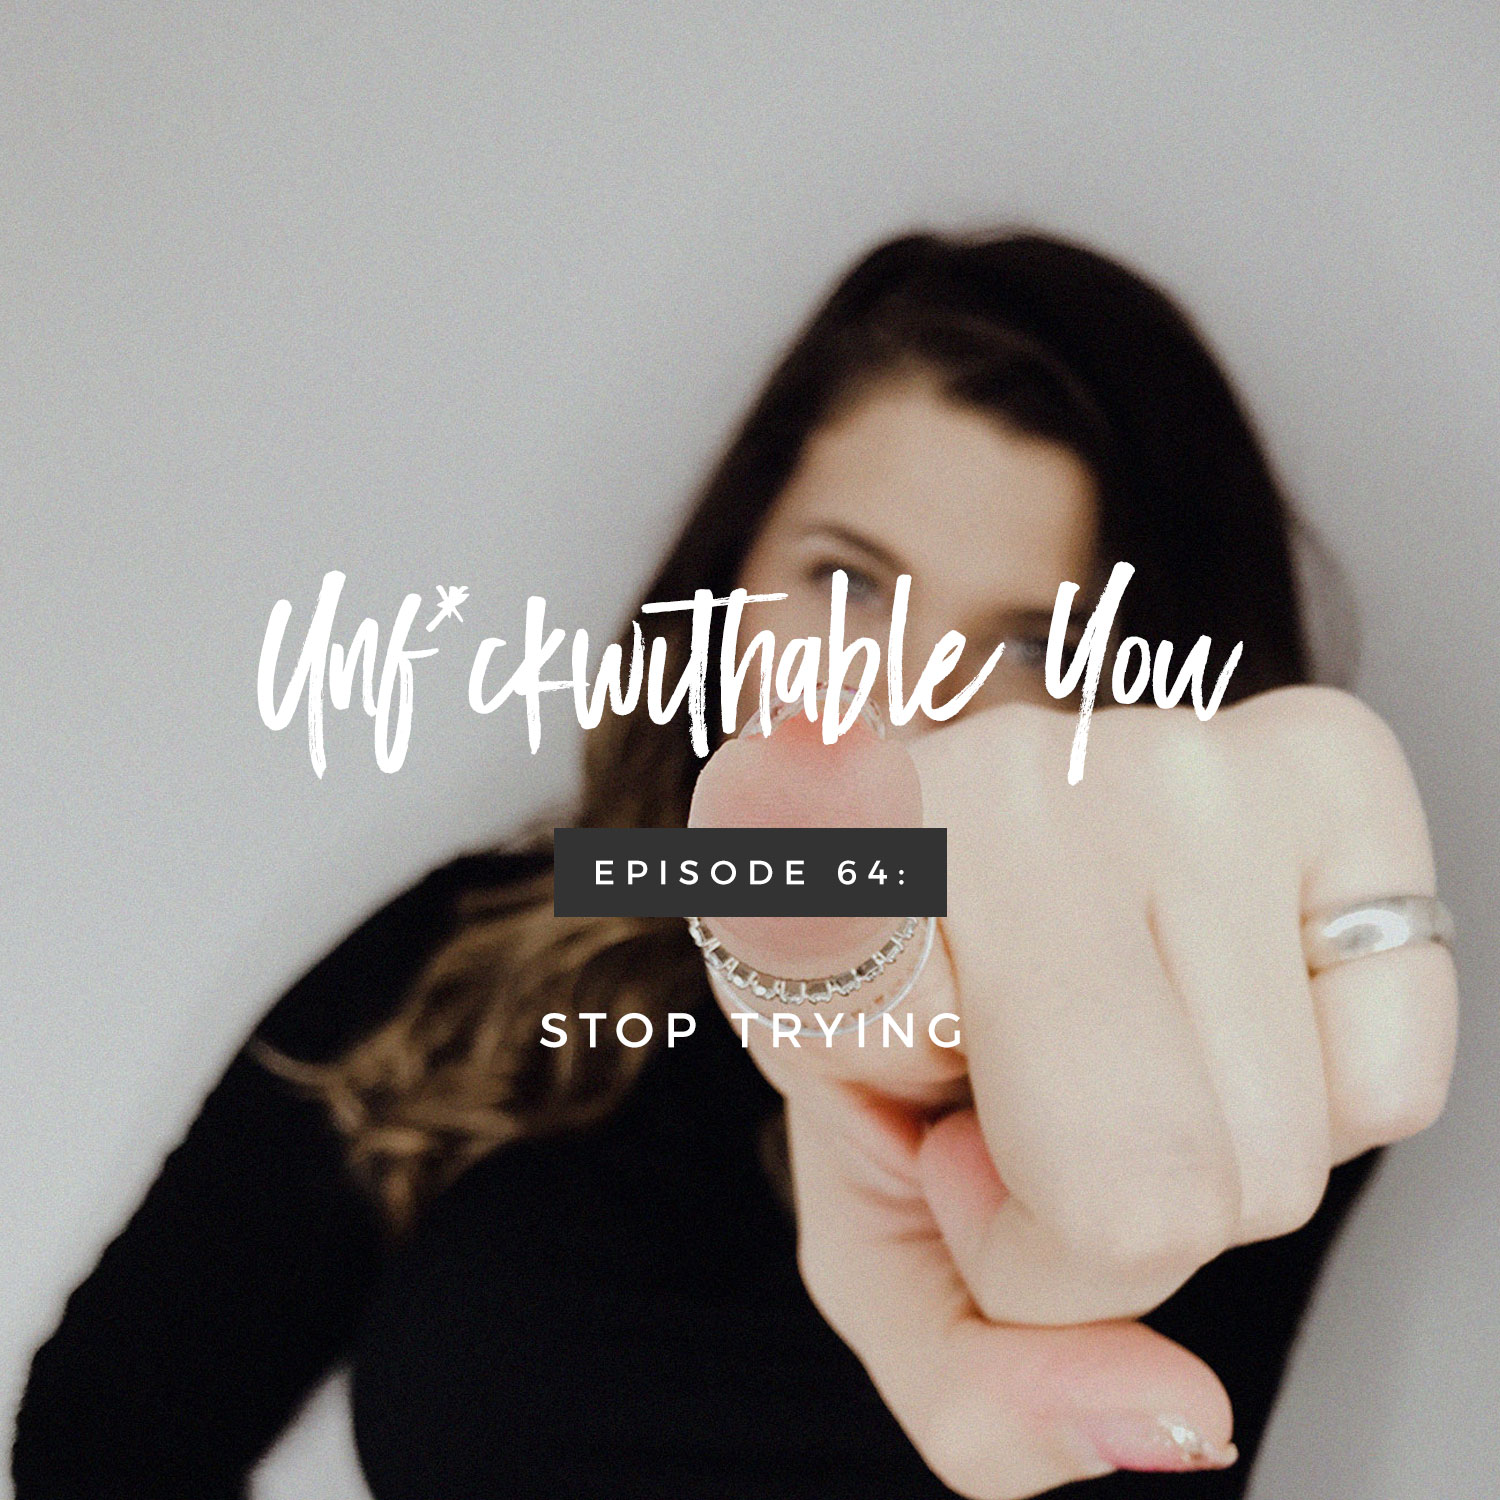 Unf*ckwithable You Episode #64: Stop Trying